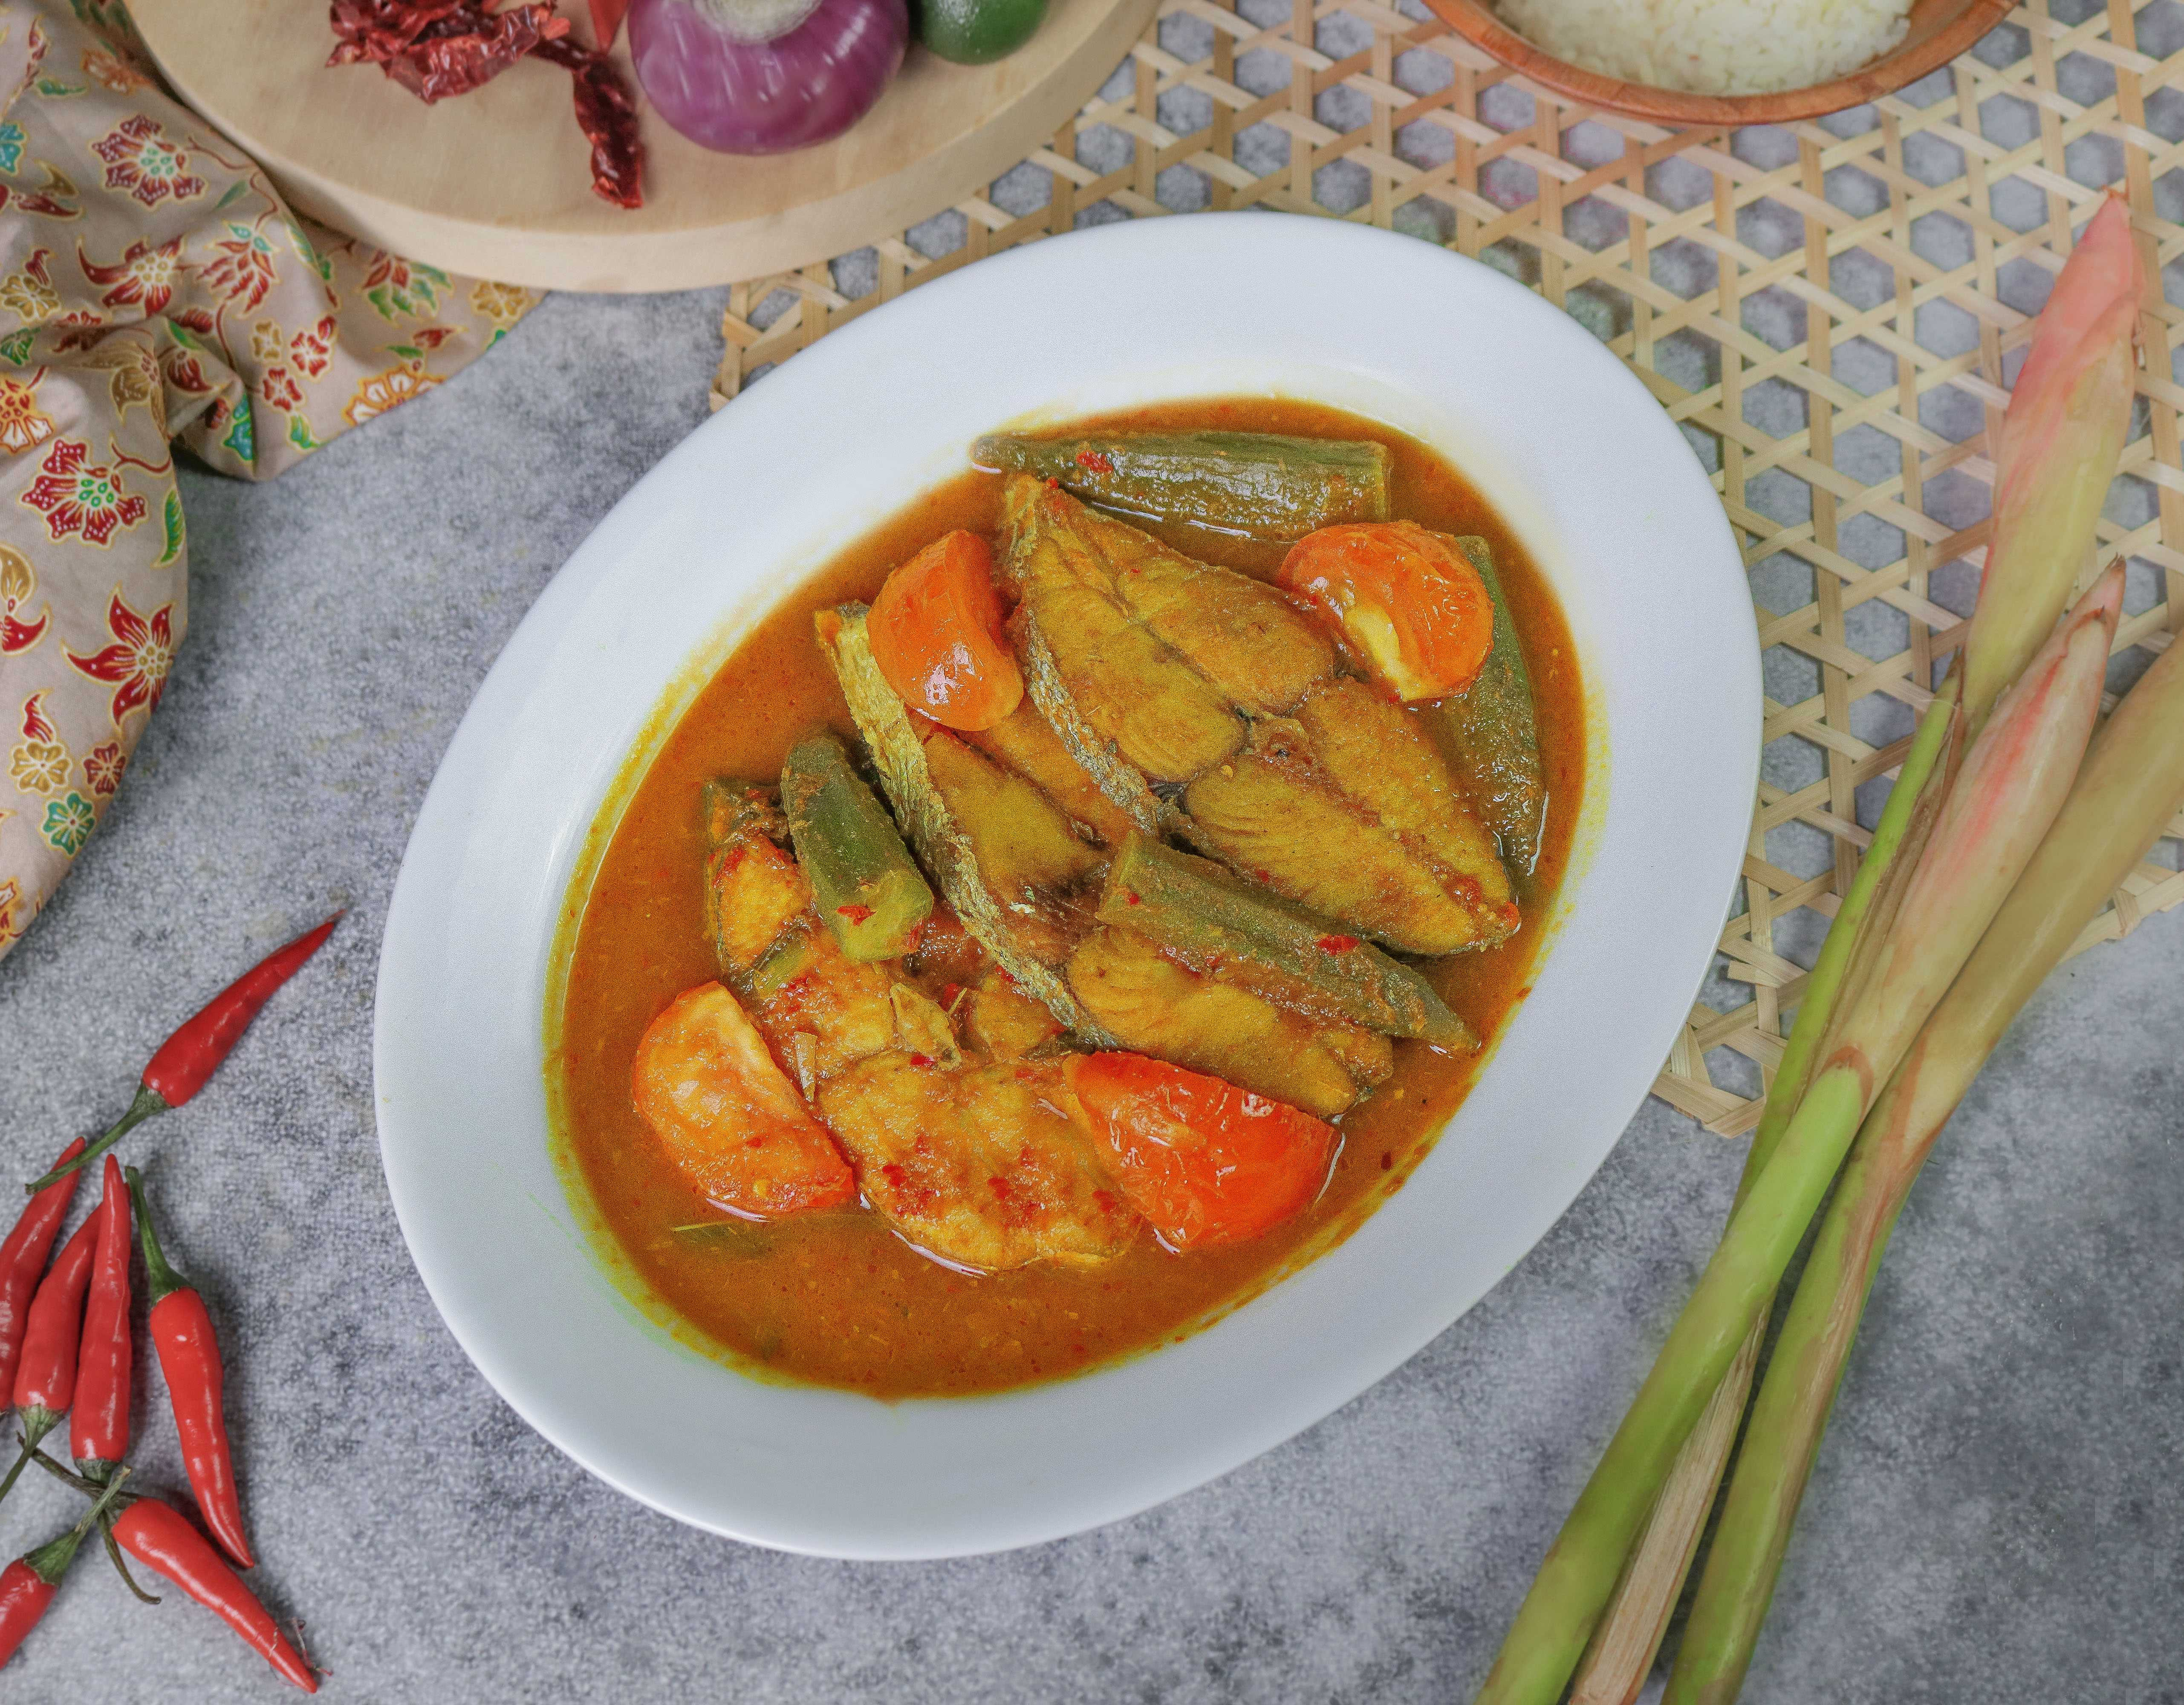 Chef Wan Penang Culture Mackerel in Spicy and Sour Gravy Gerang Asam